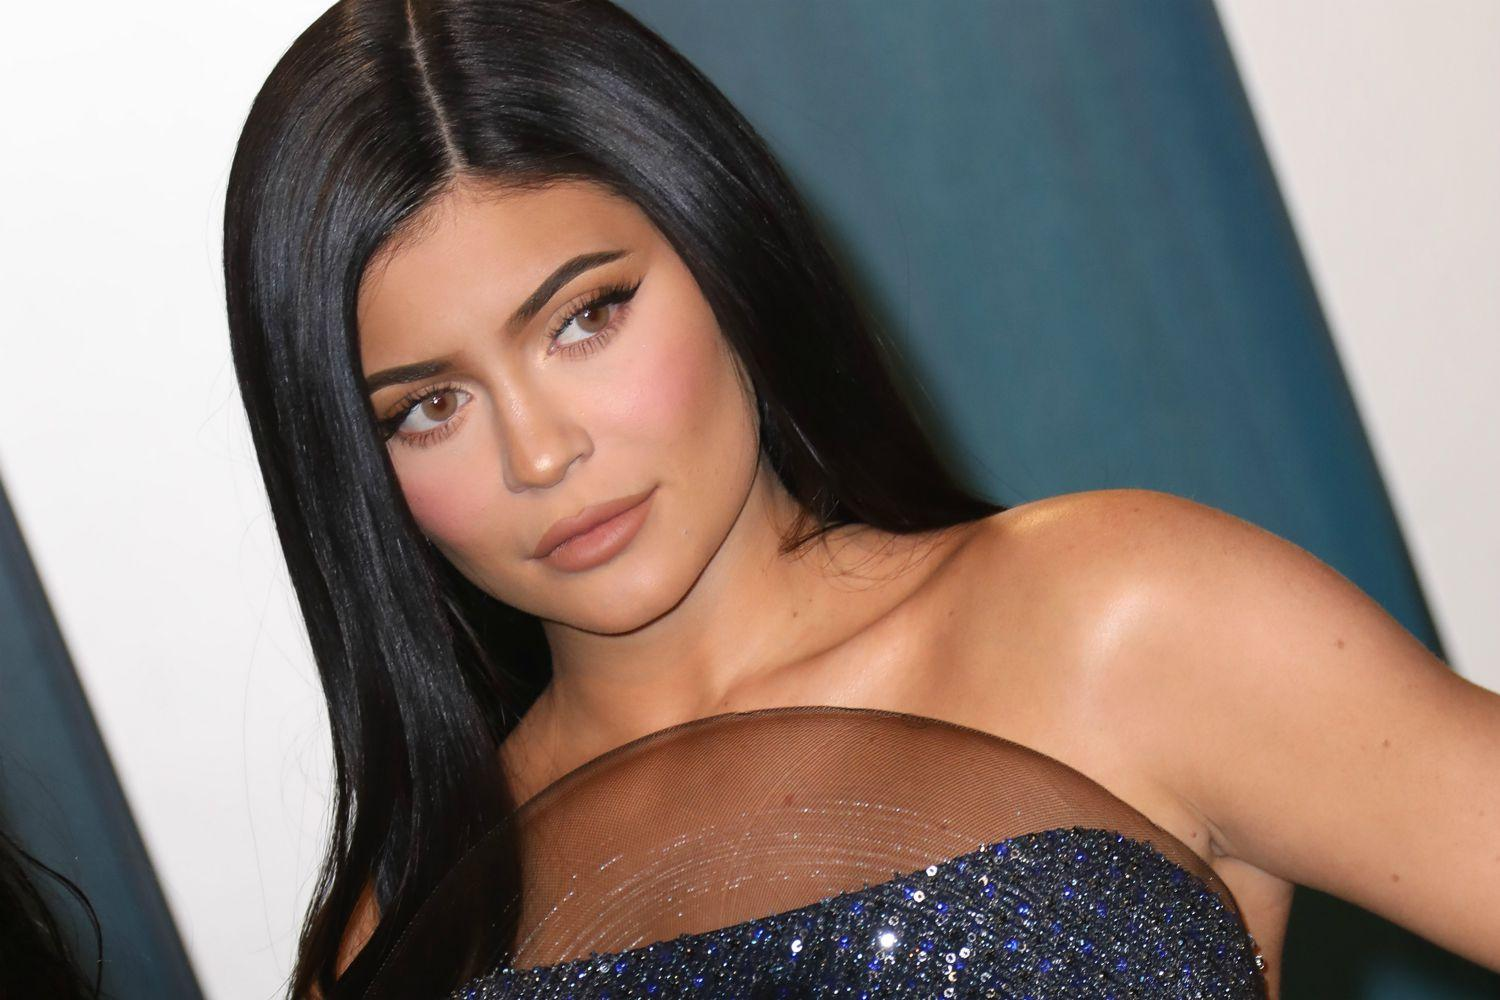 Kylie Jenner Says That Someone She Knows Well Is Infected With COVID-19 During KUWK Trailer!